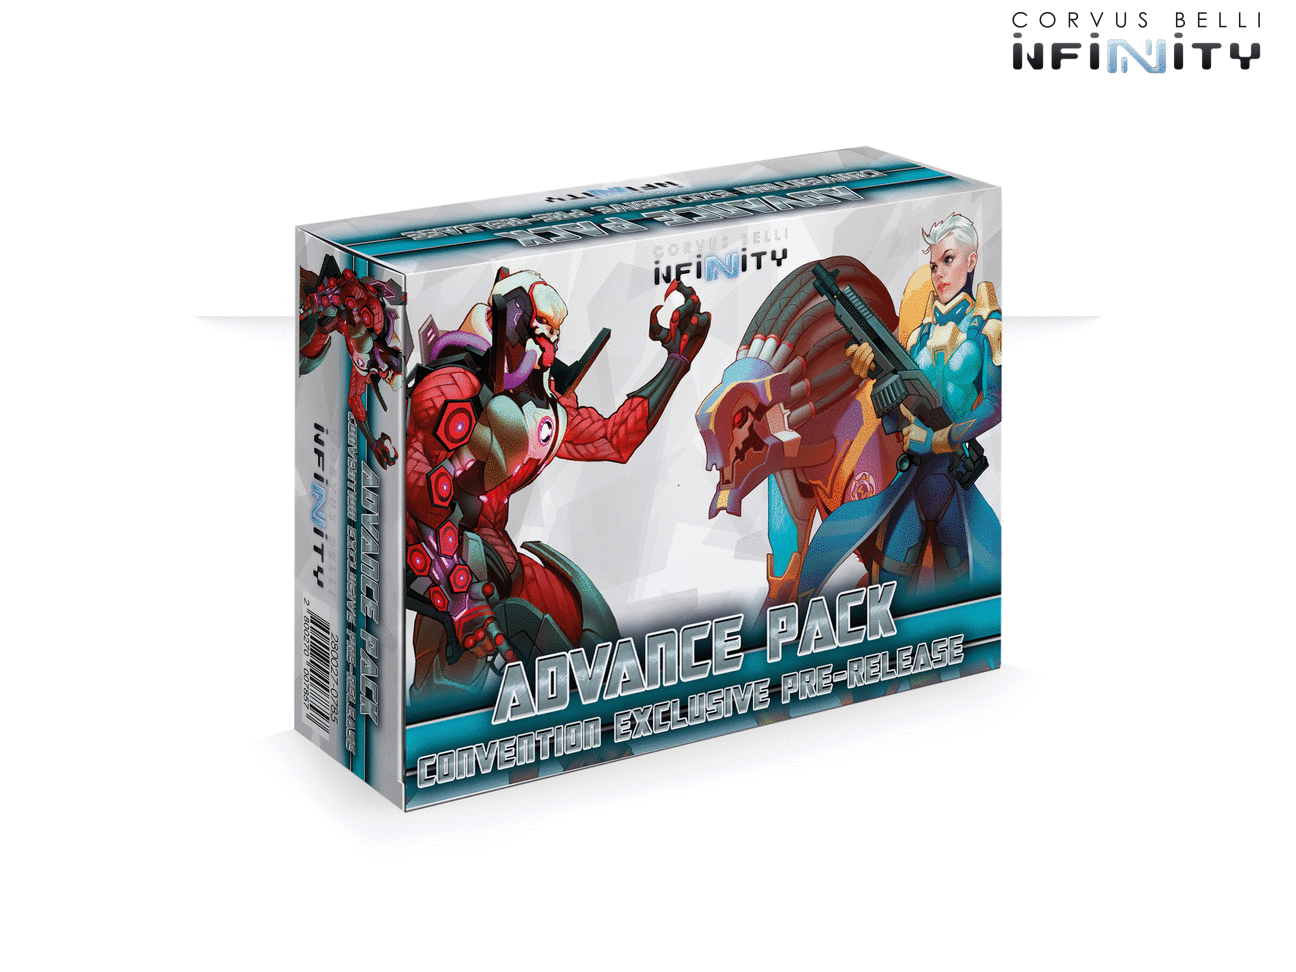 Infinity: Advance Pack (Convention Exclusive Pre-Release)